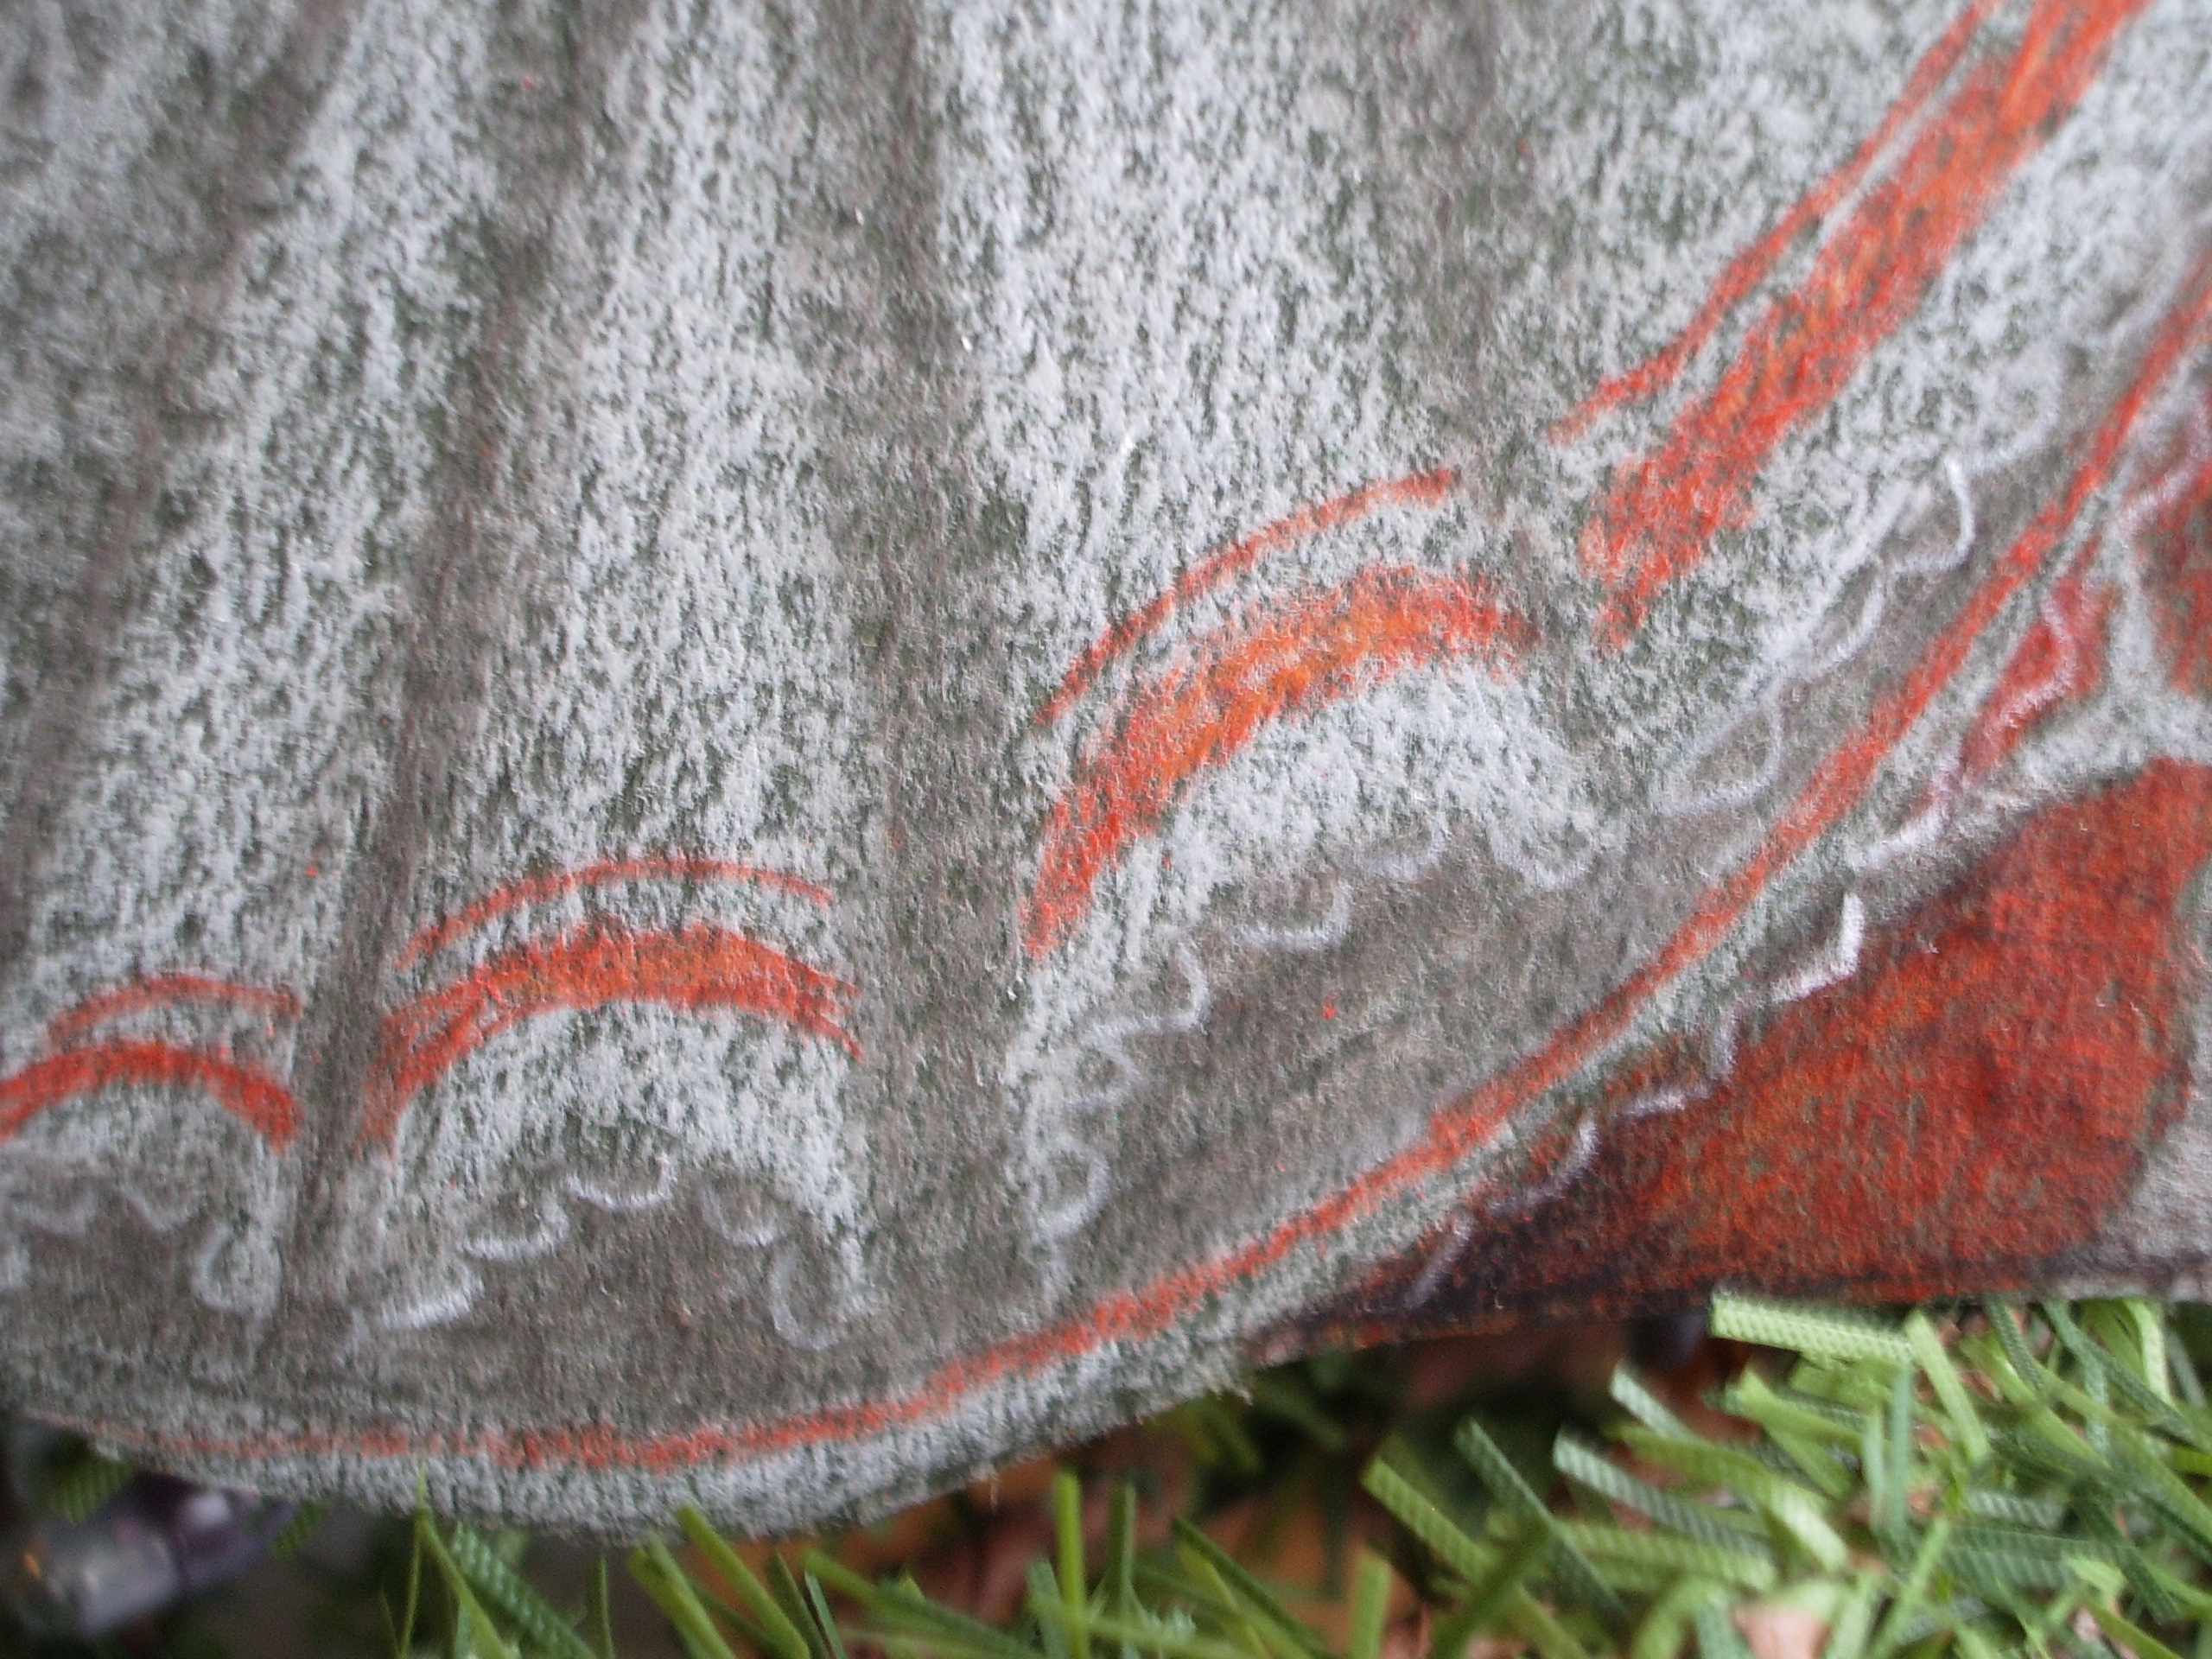 Creating Fabric Folds With Acrylics